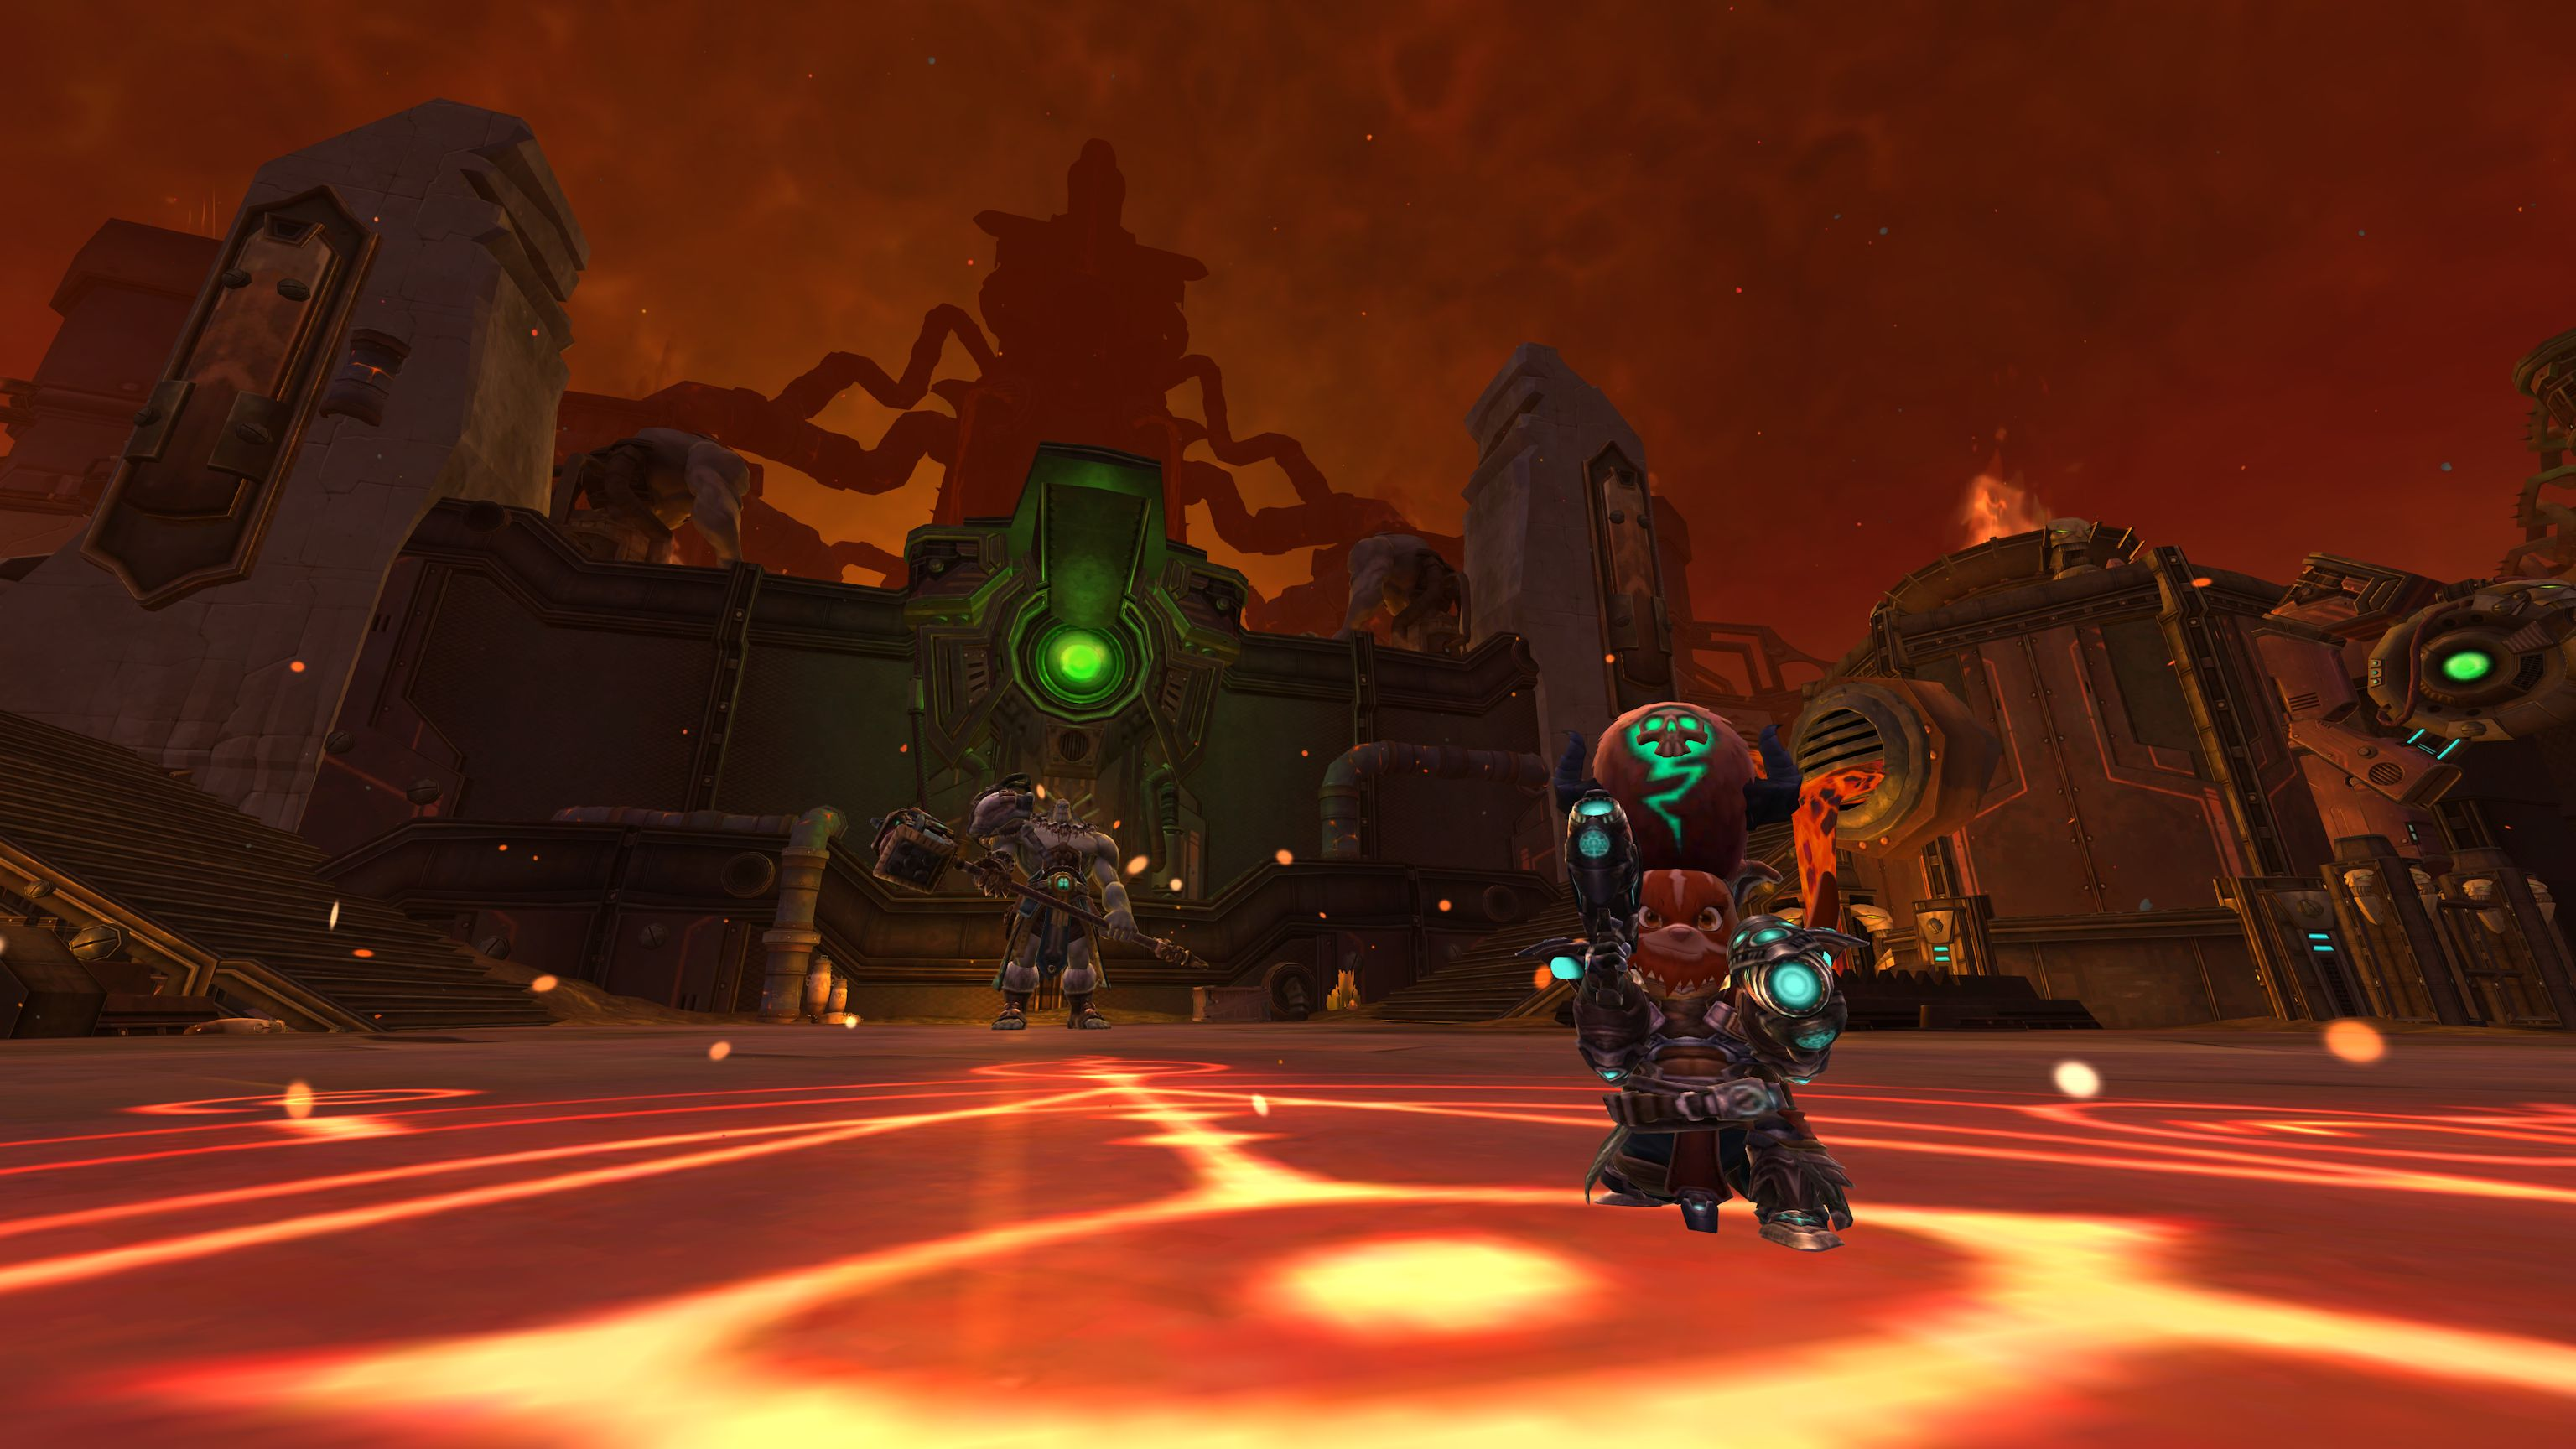 Free-to-play WildStar 'Reloaded' arrives September 29th